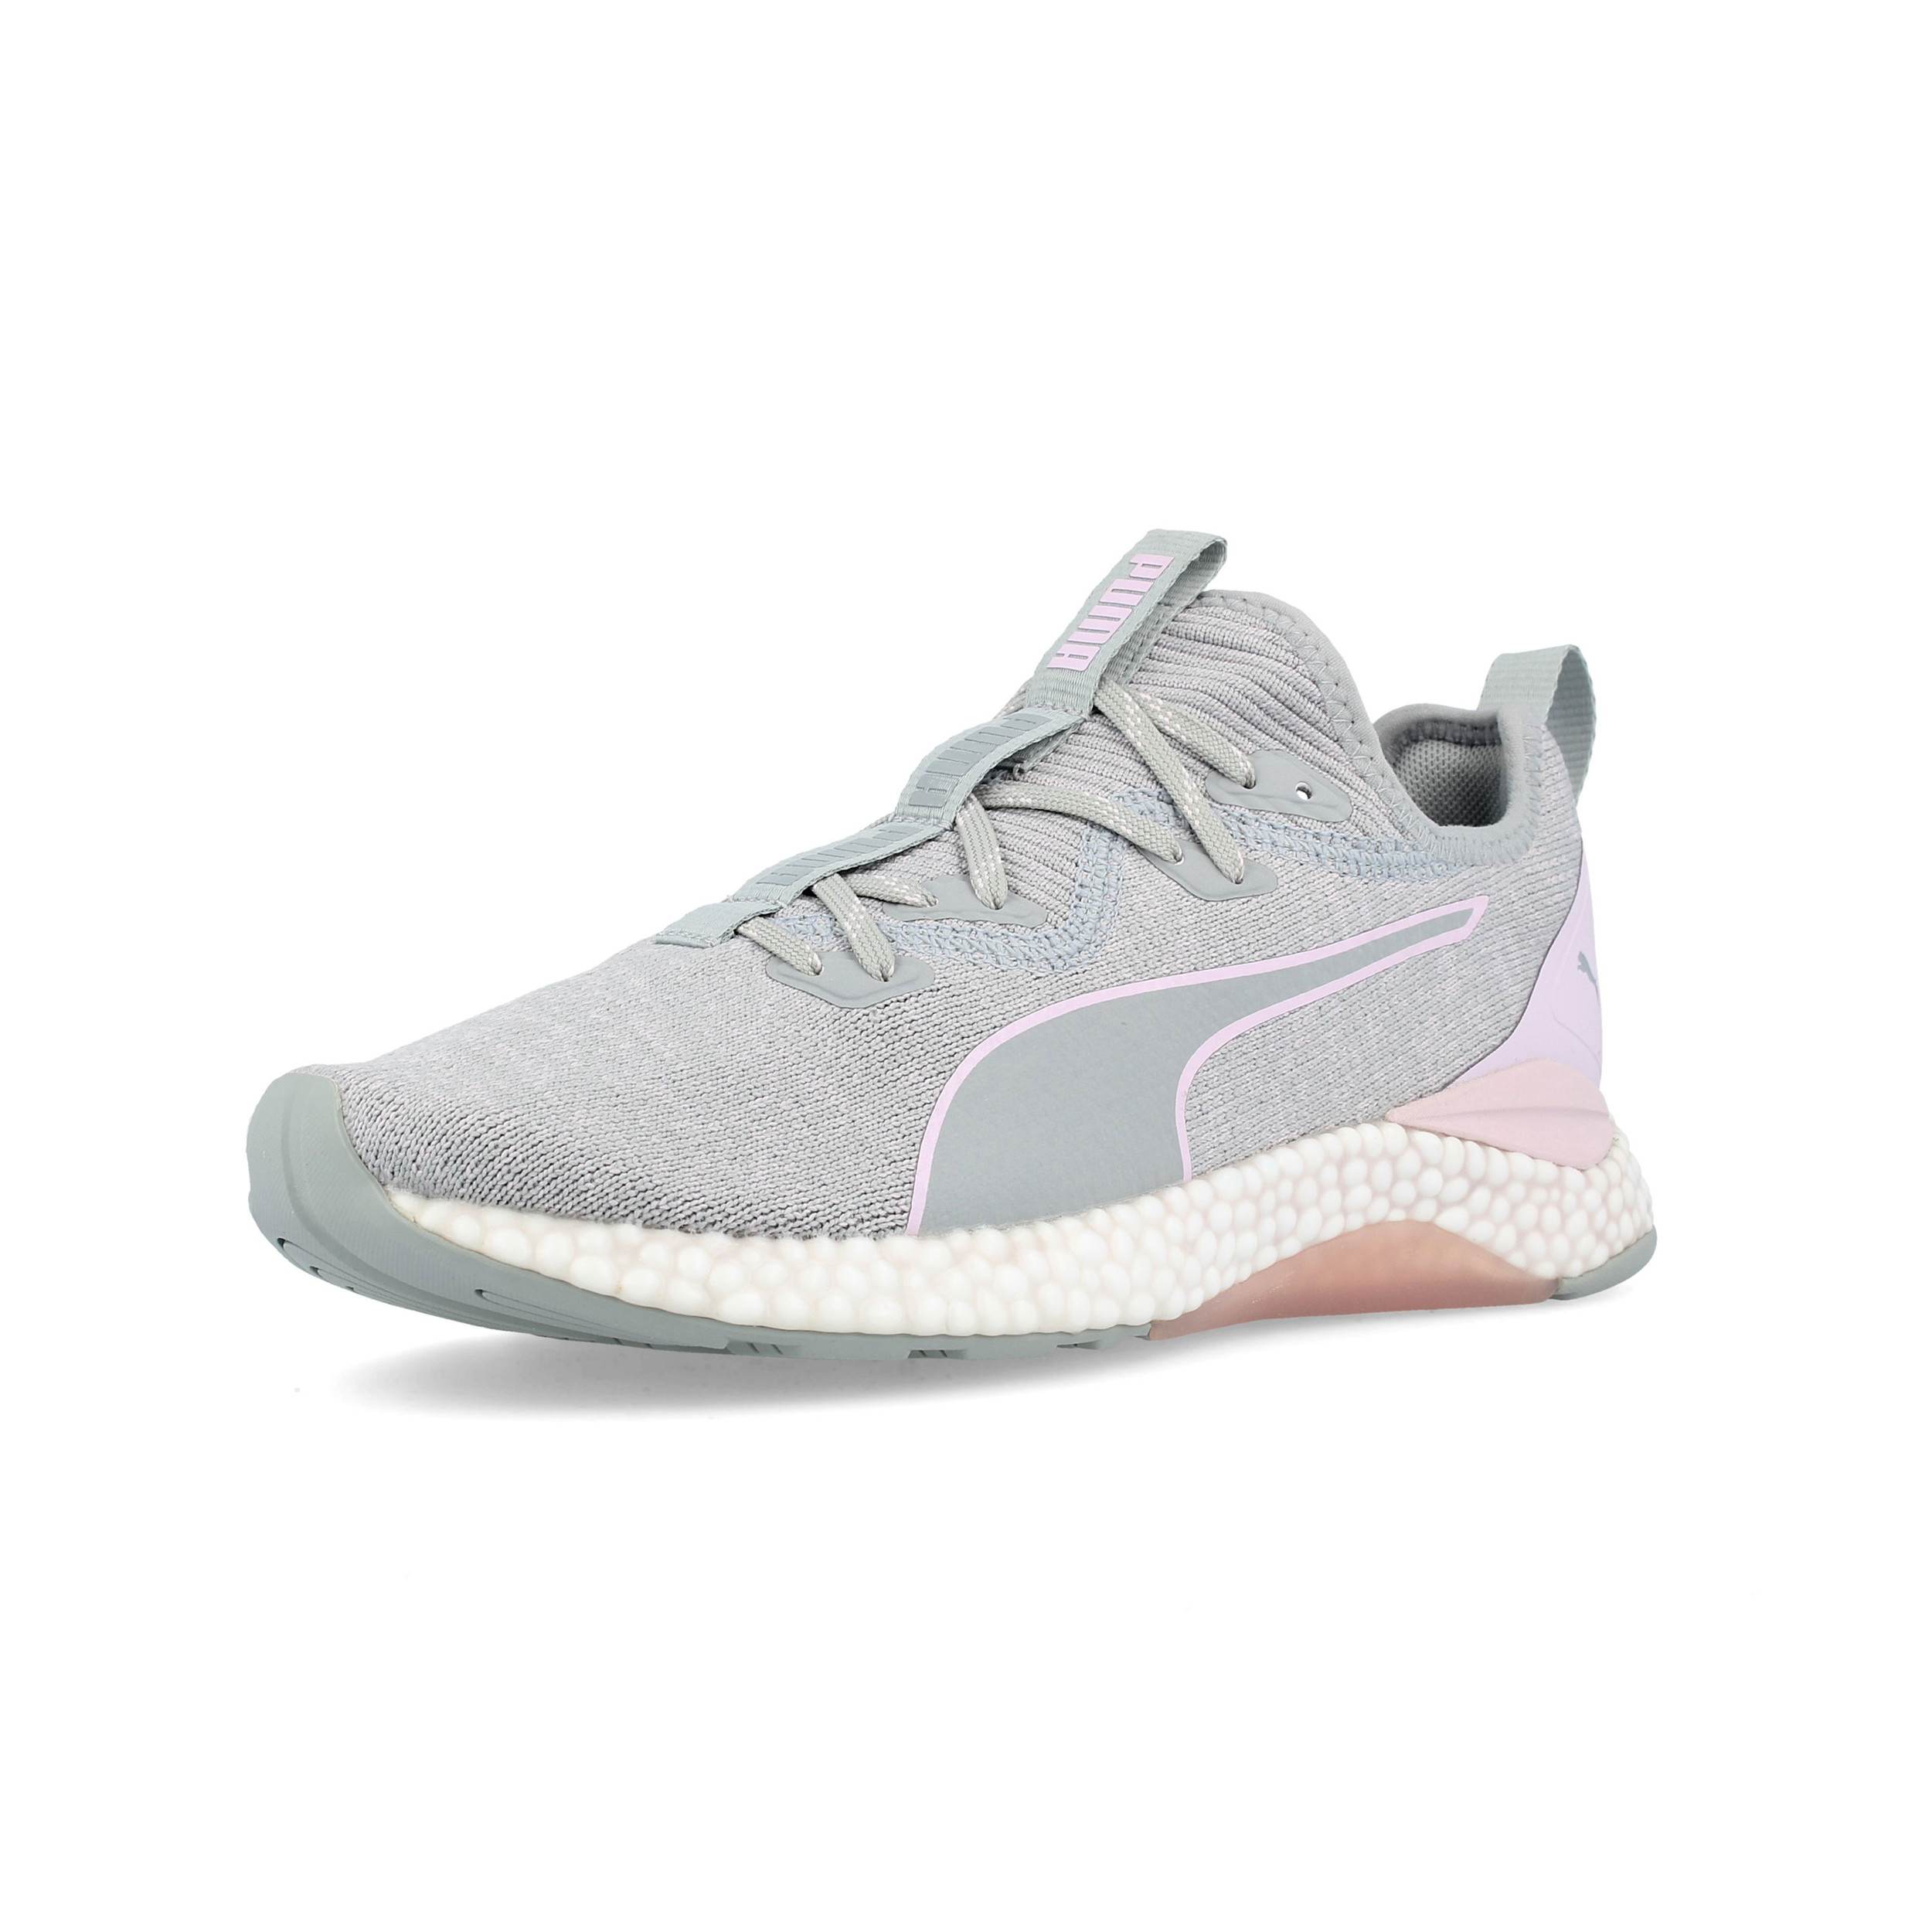 eafdc2eba726 Puma Womens Hybrid Runner Running Shoes Trainers Sneakers Grey Sports  Breathable